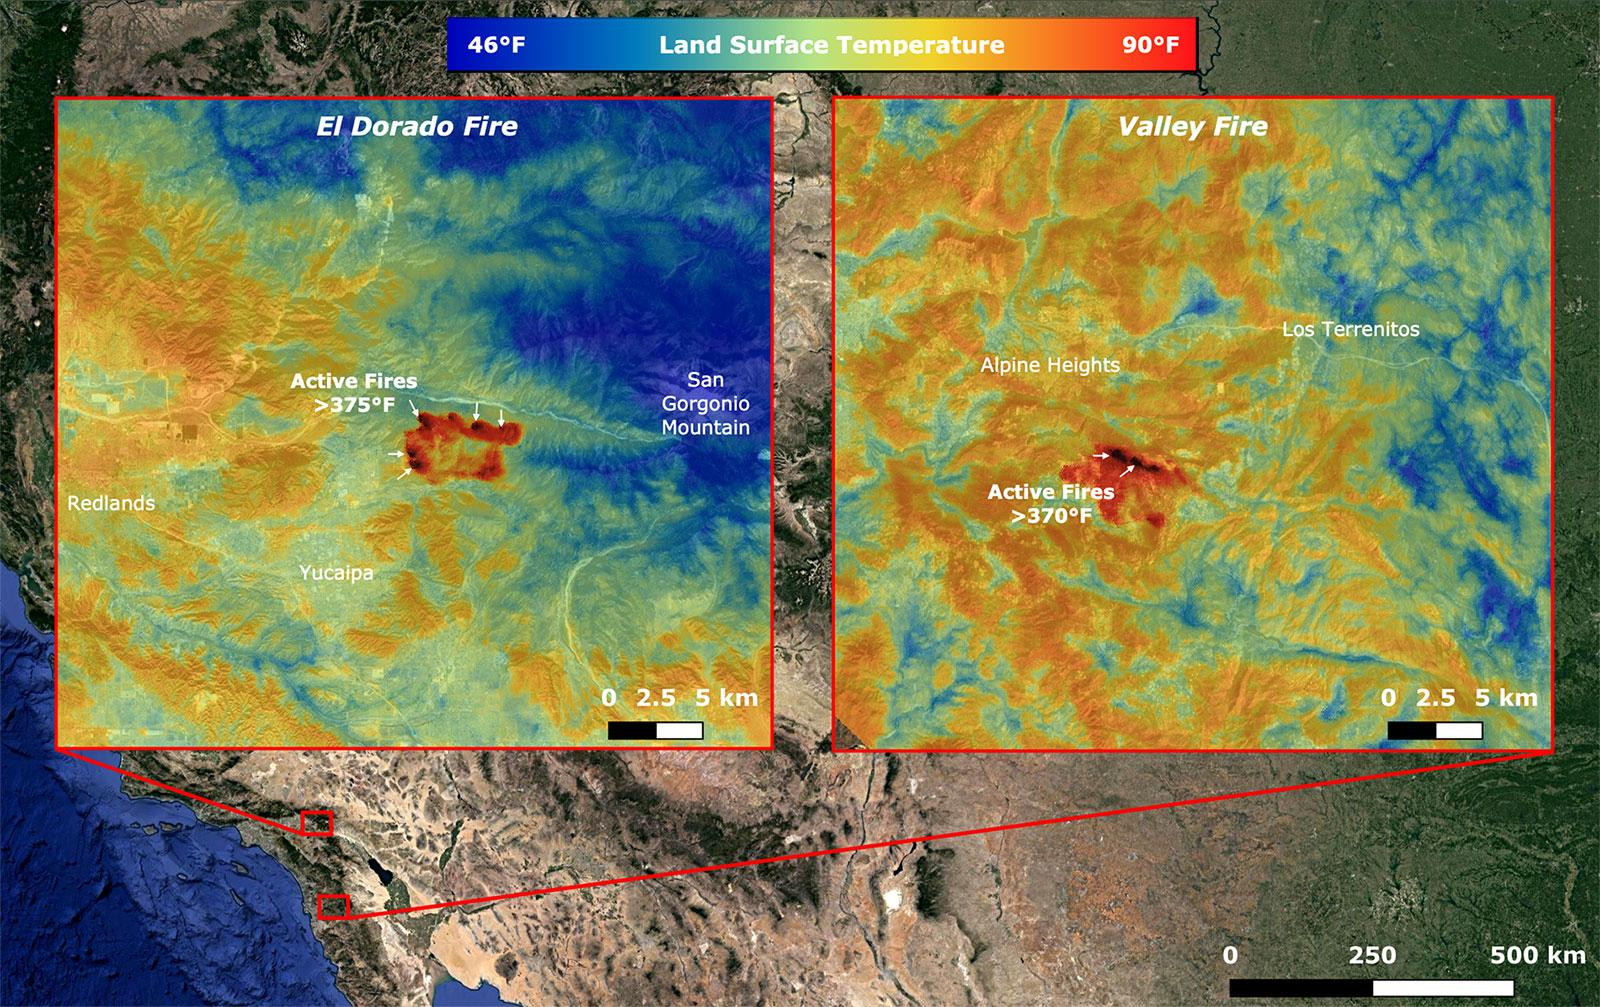 On Sept. 6, NASAs ECOSTRESS imaged active fires across California, including the El Dorado fire near Yucaipa and the Valley fire in Japatul Valley in the southern part of the state.